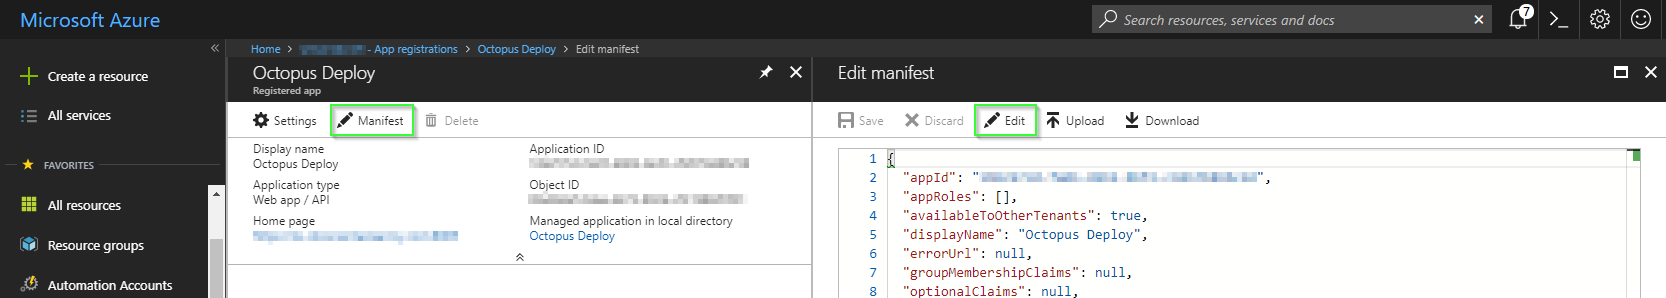 Editing an App registration manifest